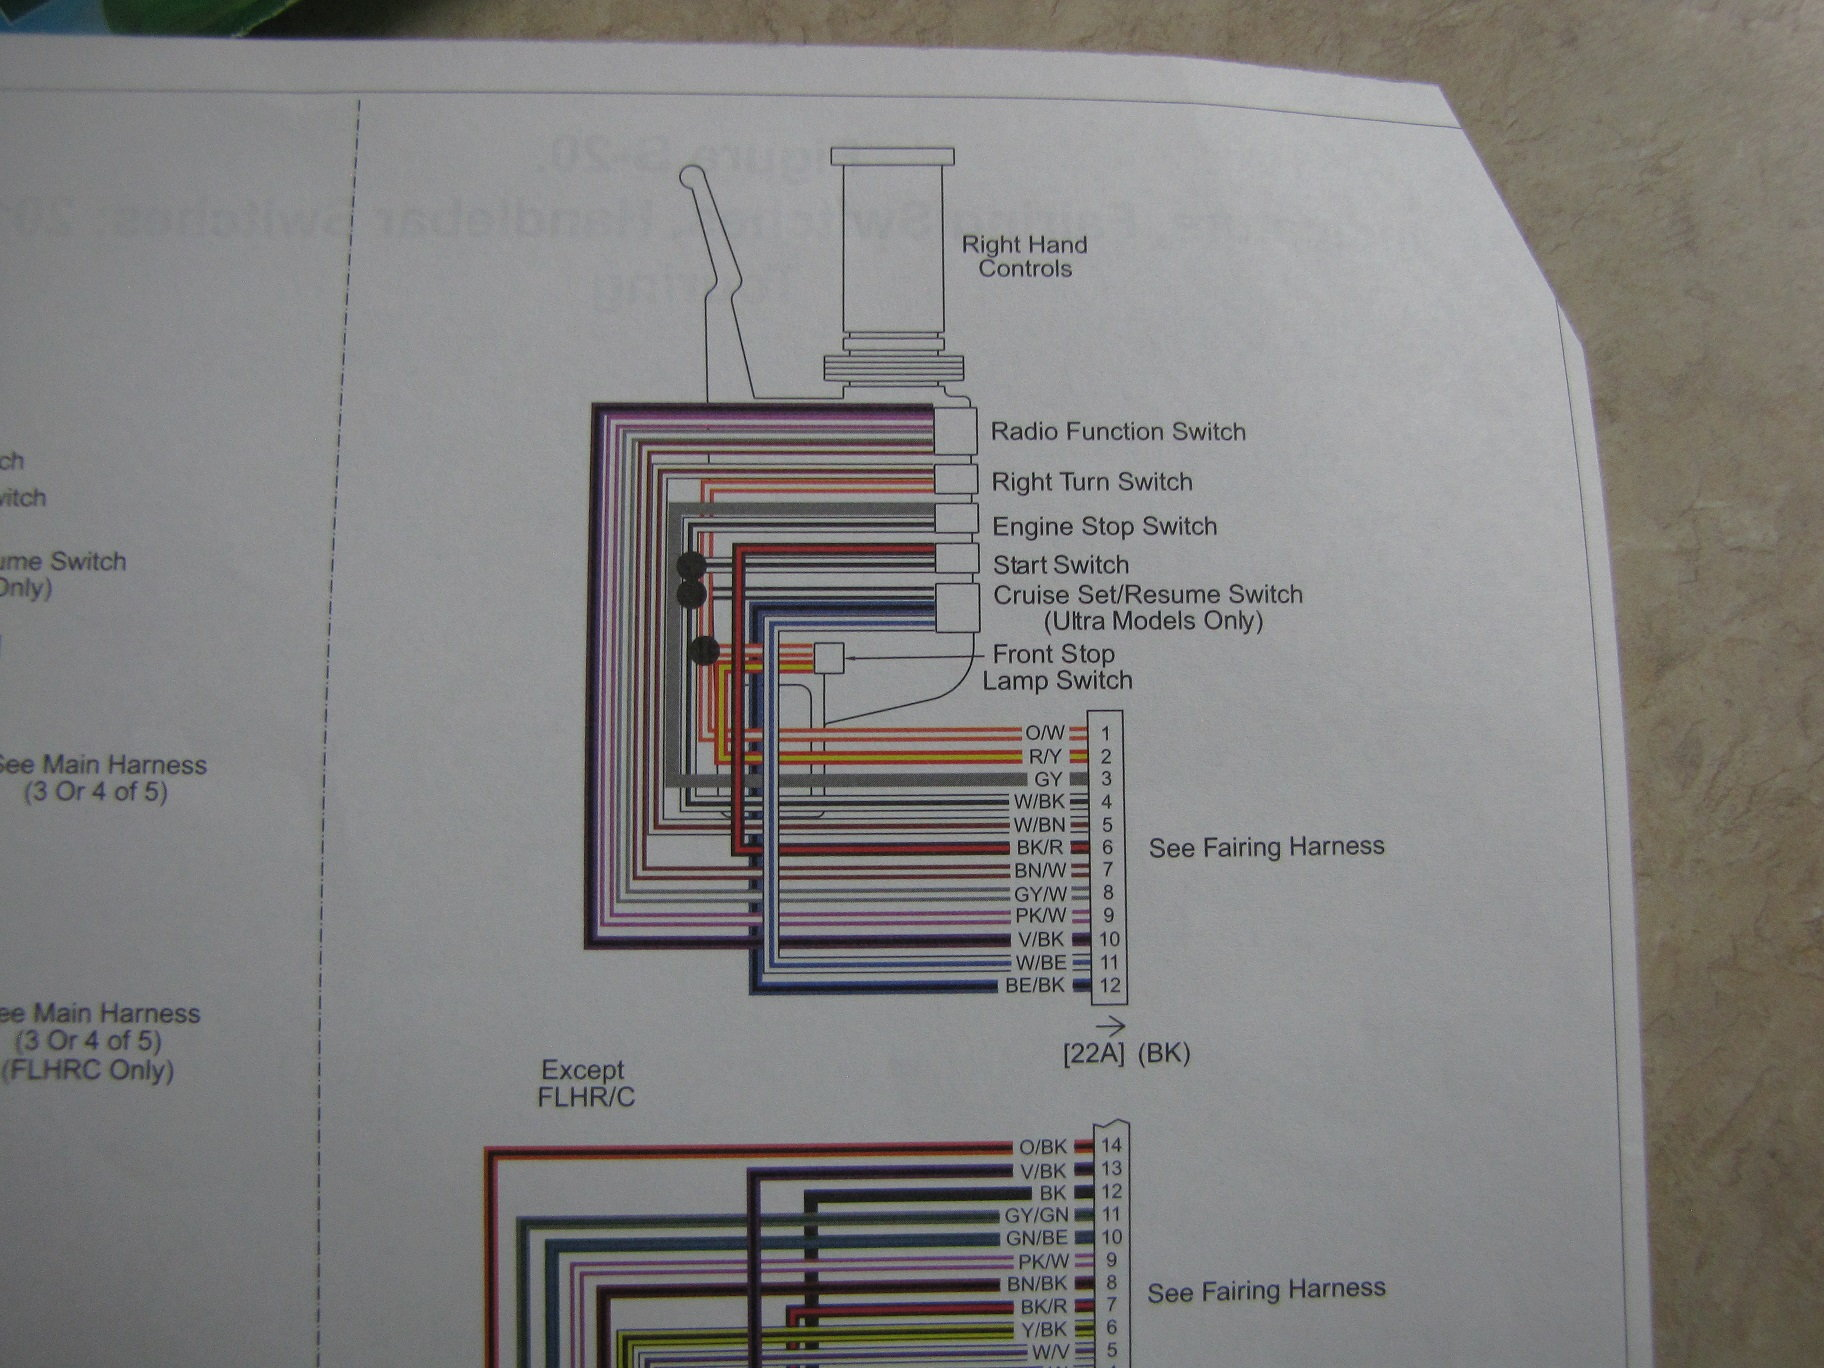 DIAGRAM] 2013 Street Glide Wiring Diagram FULL Version HD Quality Wiring  Diagram - NOTIZIE.TRIESTELIVE.ITnotizie.triestelive.it